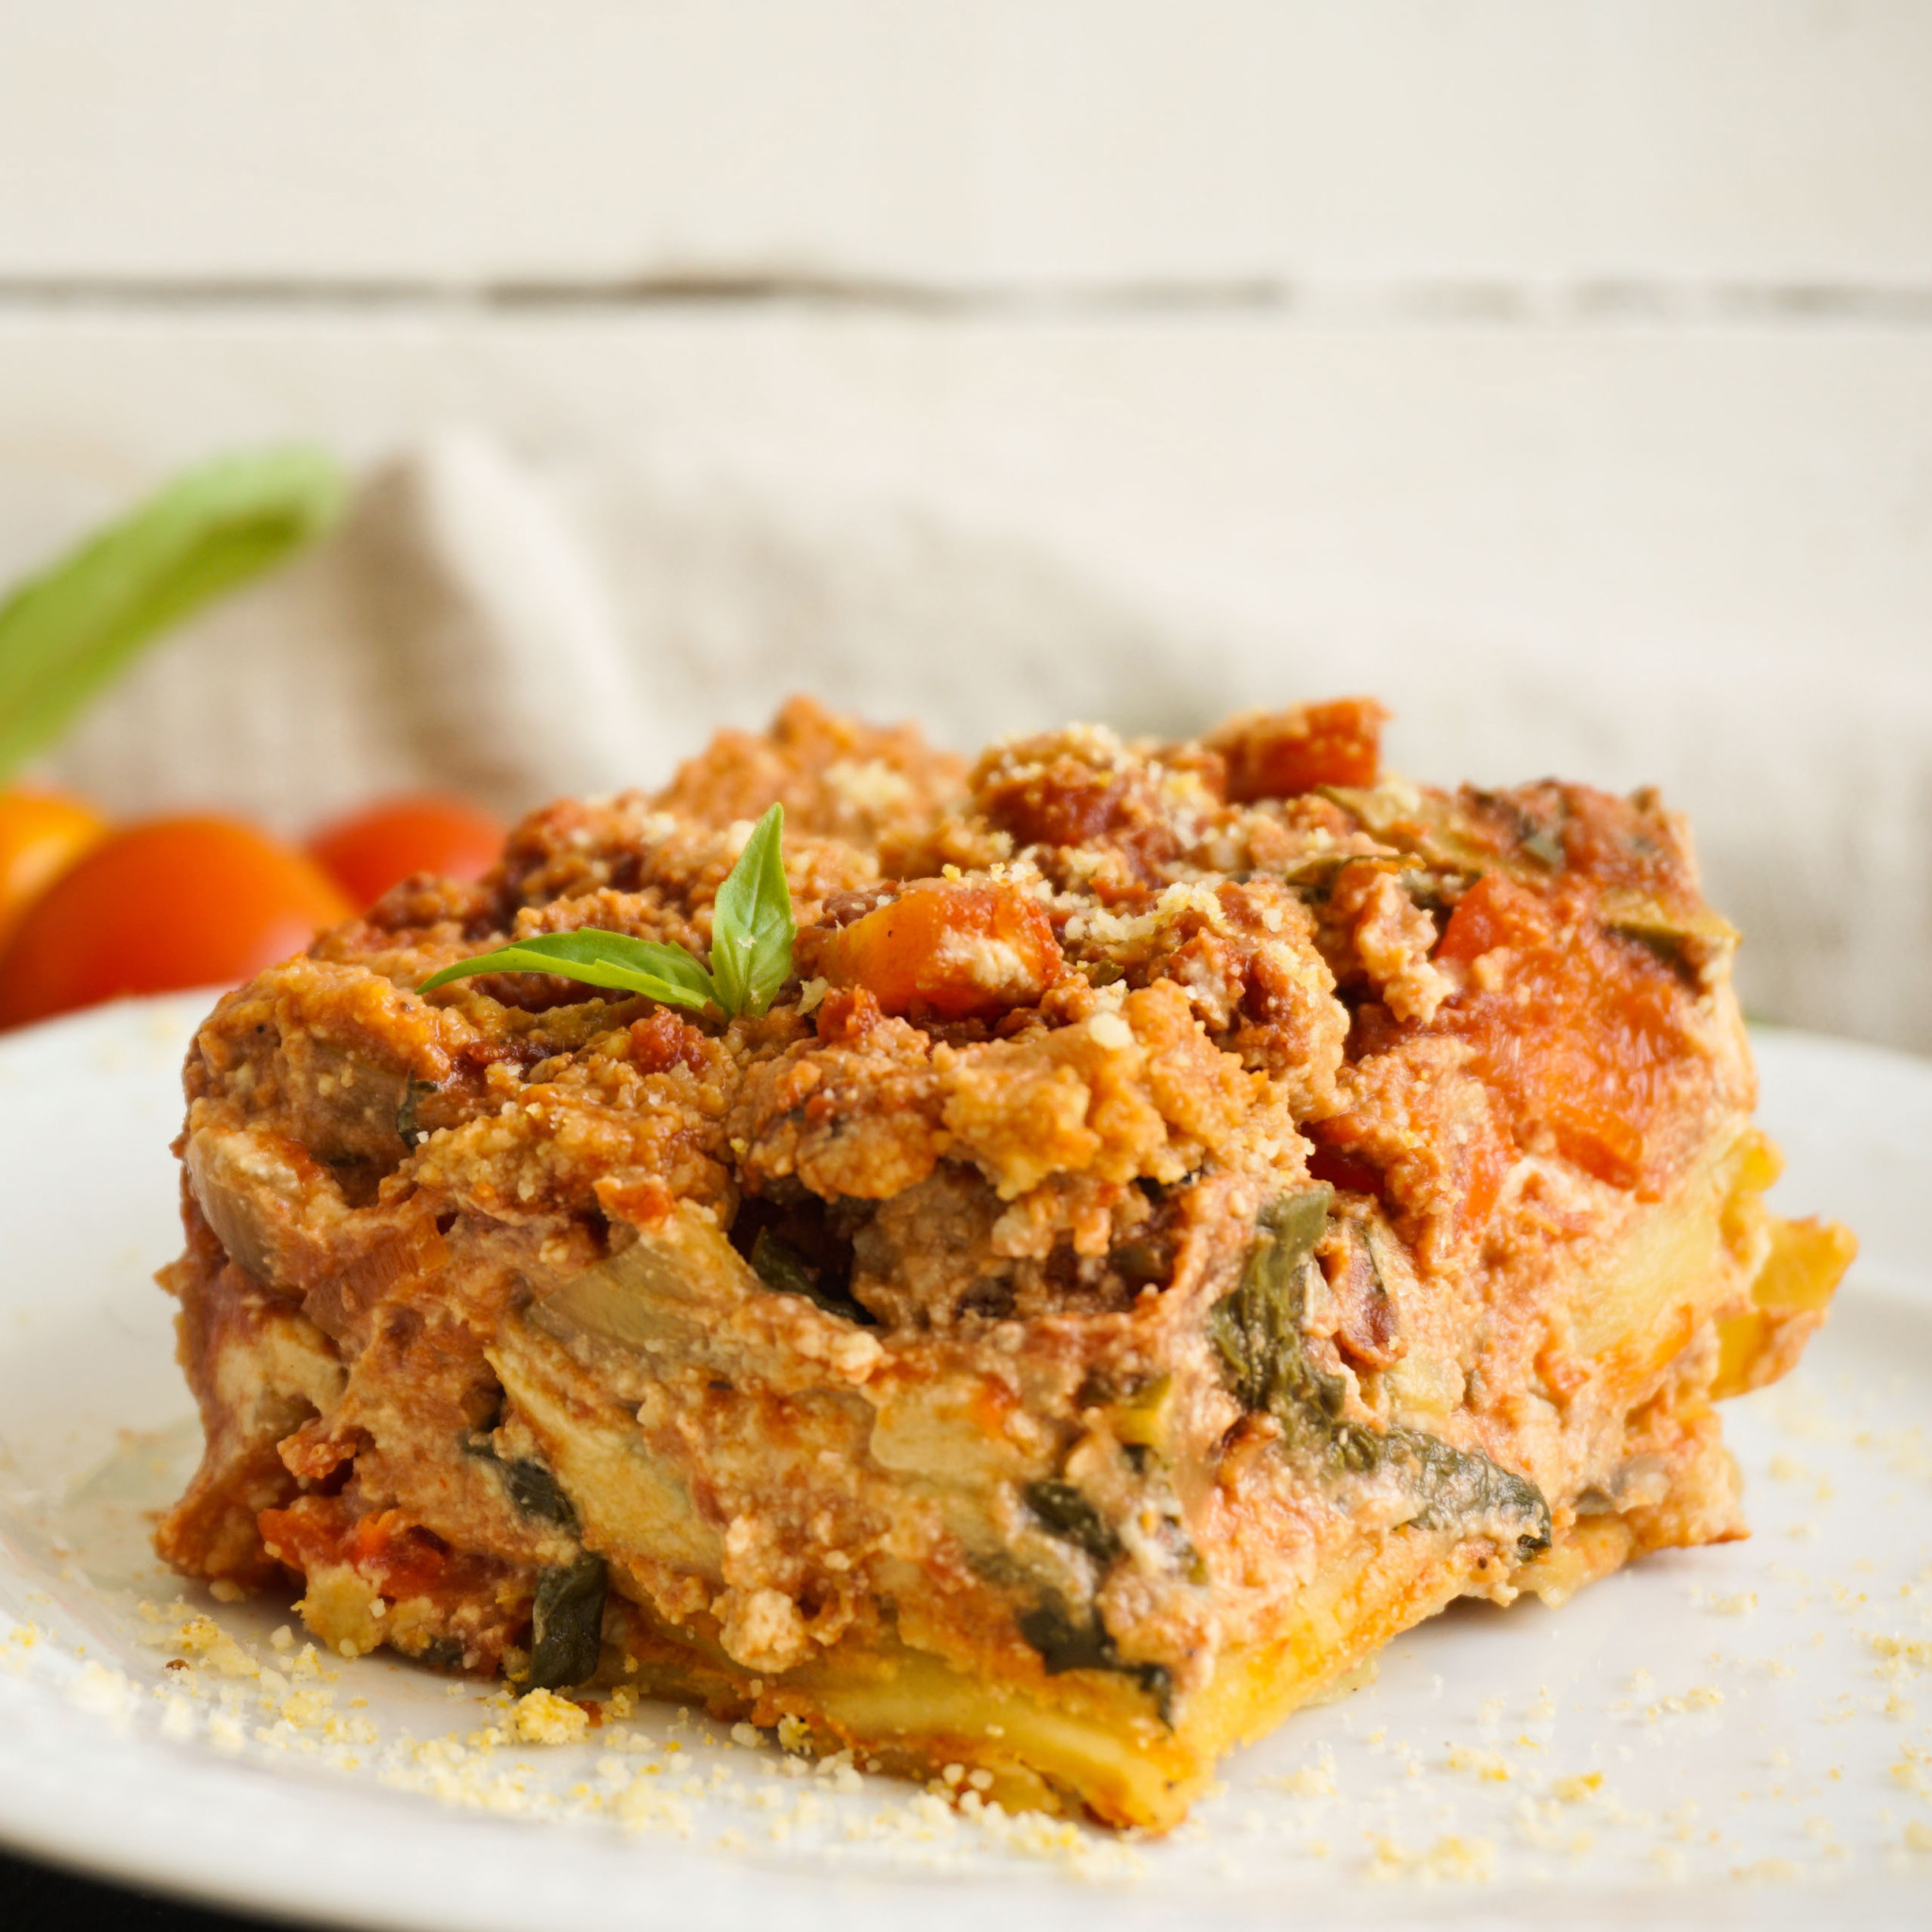 Vegan Lasagna The Tasty K